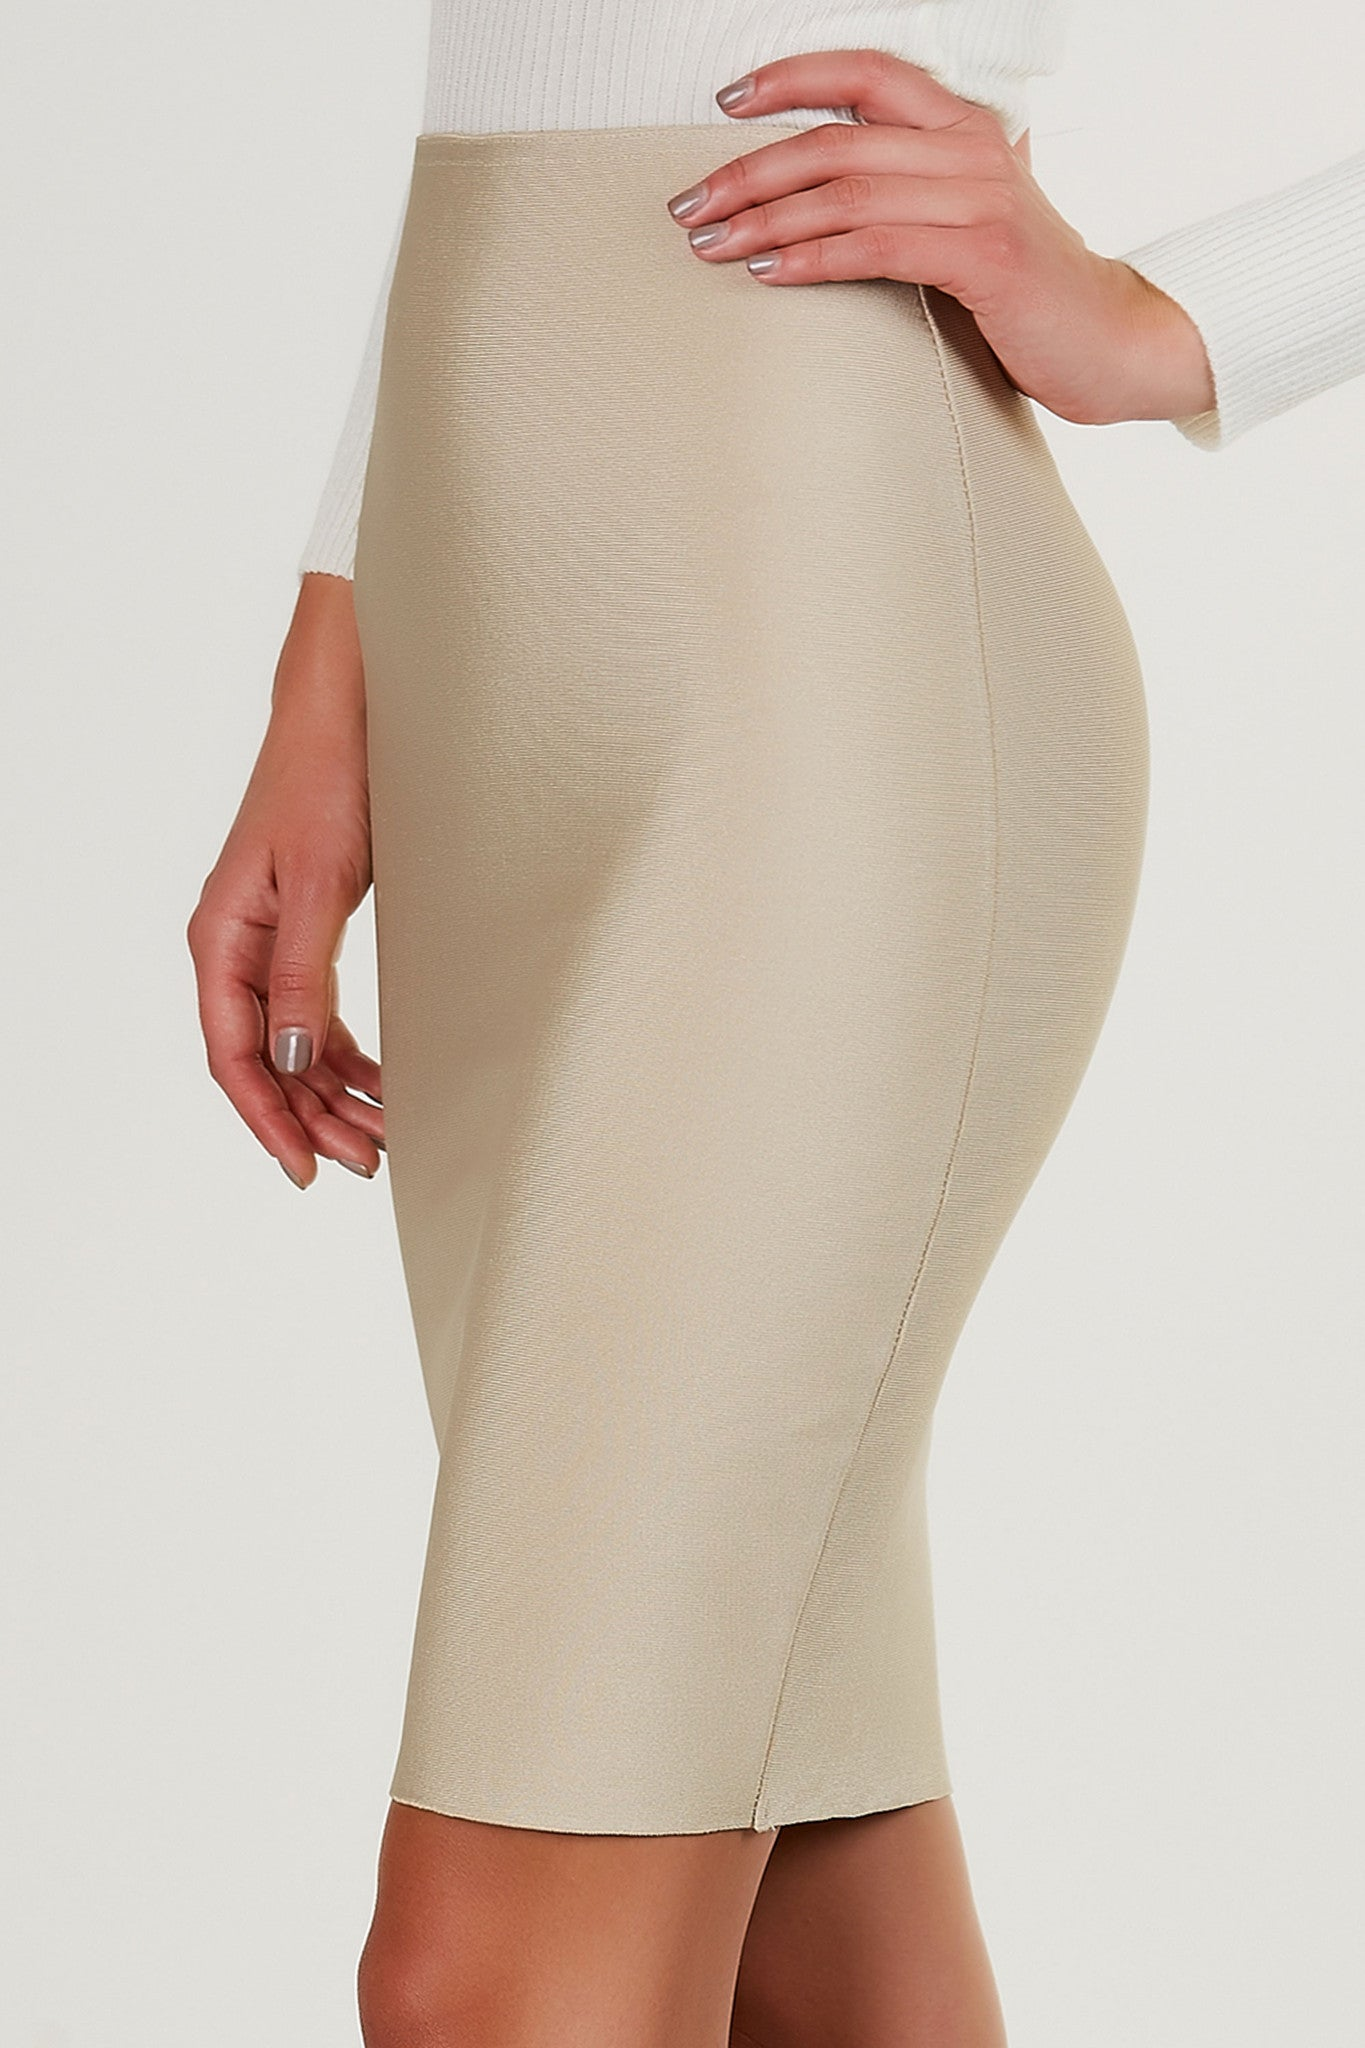 High rise bandage bodycon skirt with straight hem all around. Great to style with bodysuits and pumps.